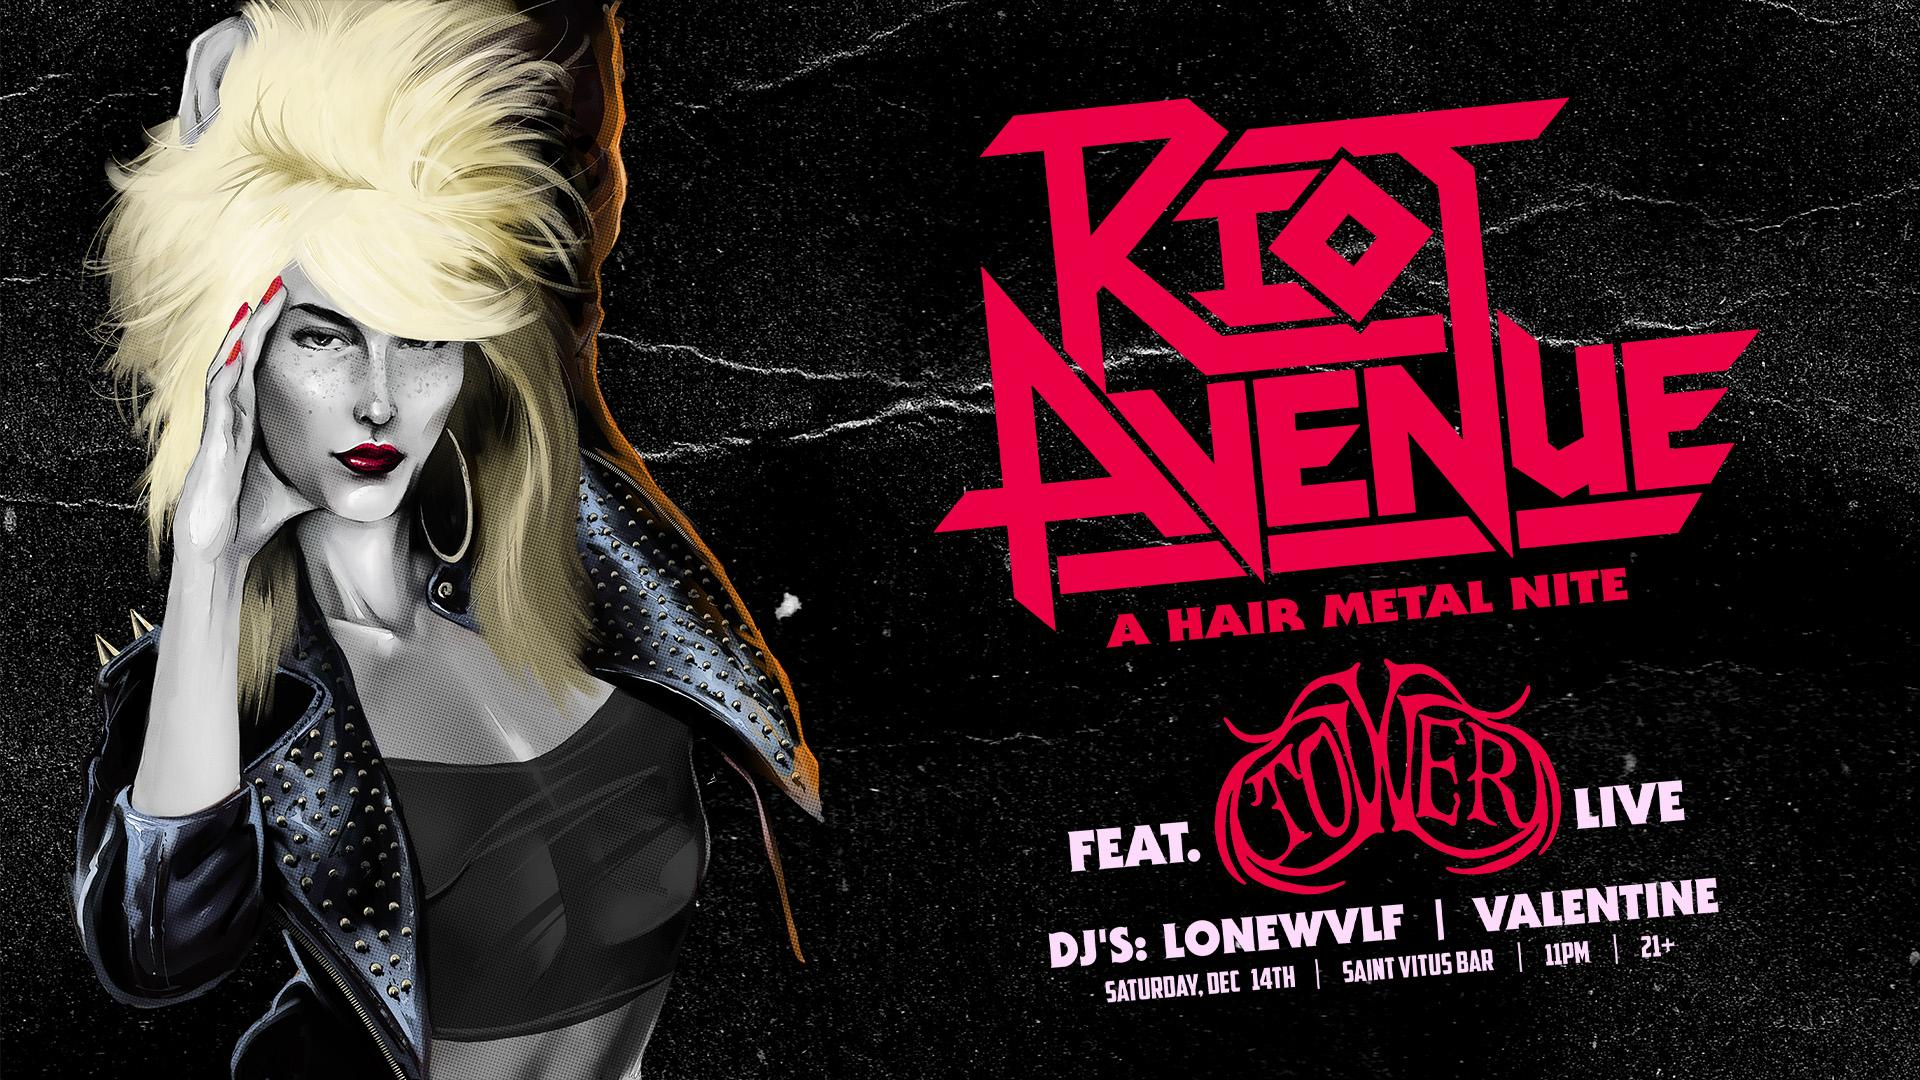 Riot Avenue - A Hair Metal Nite feat. TOWER Live! Free w/RSVP